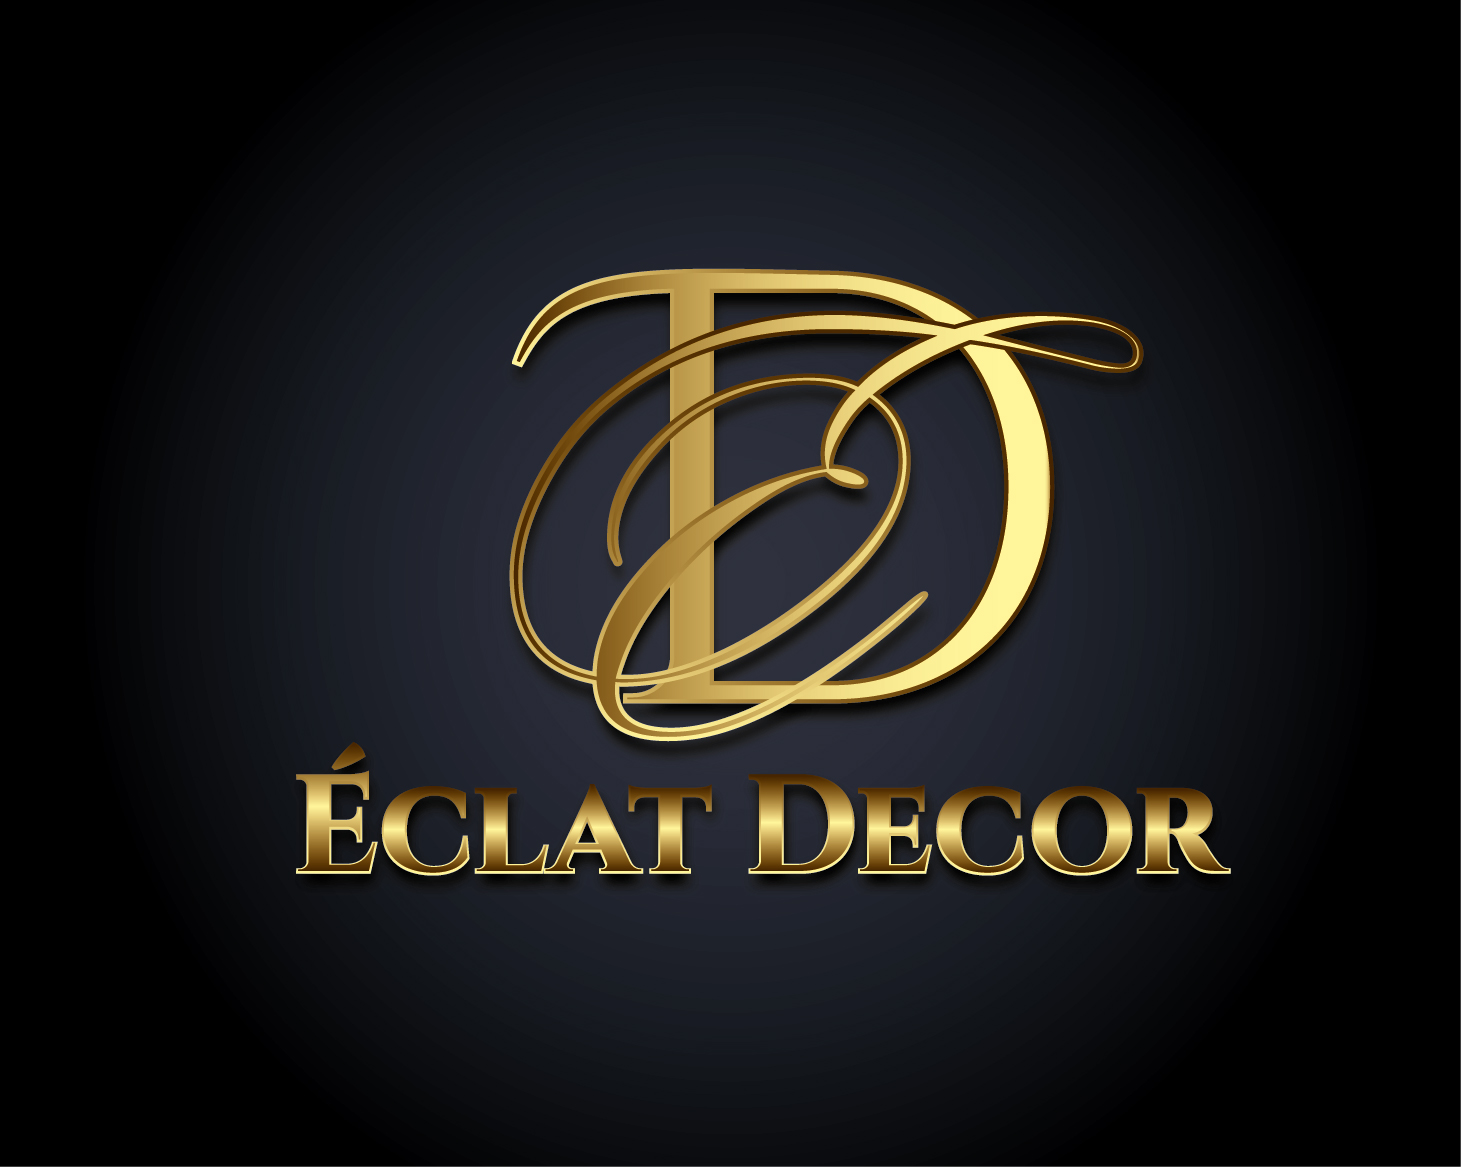 Logo Design by VENTSISLAV KOVACHEV - Entry No. 26 in the Logo Design Contest Imaginative Logo Design for Éclat Decor.